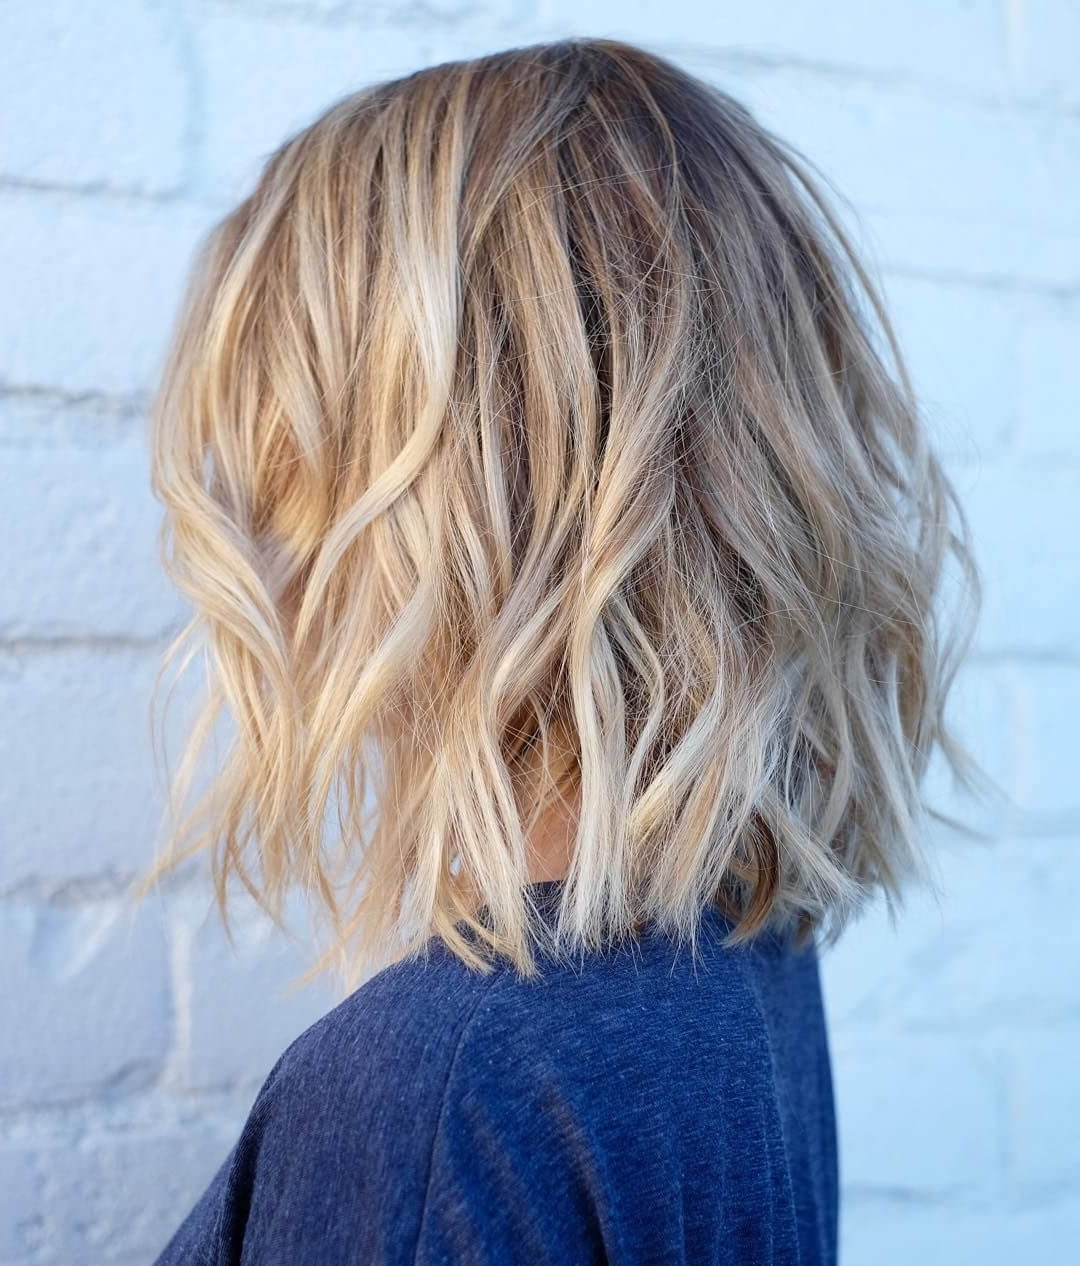 50 Fresh Short Blonde Hair Ideas To Update Your Style In 2018 Throughout 2017 Long Bob Blonde Hairstyles With Babylights (View 8 of 20)